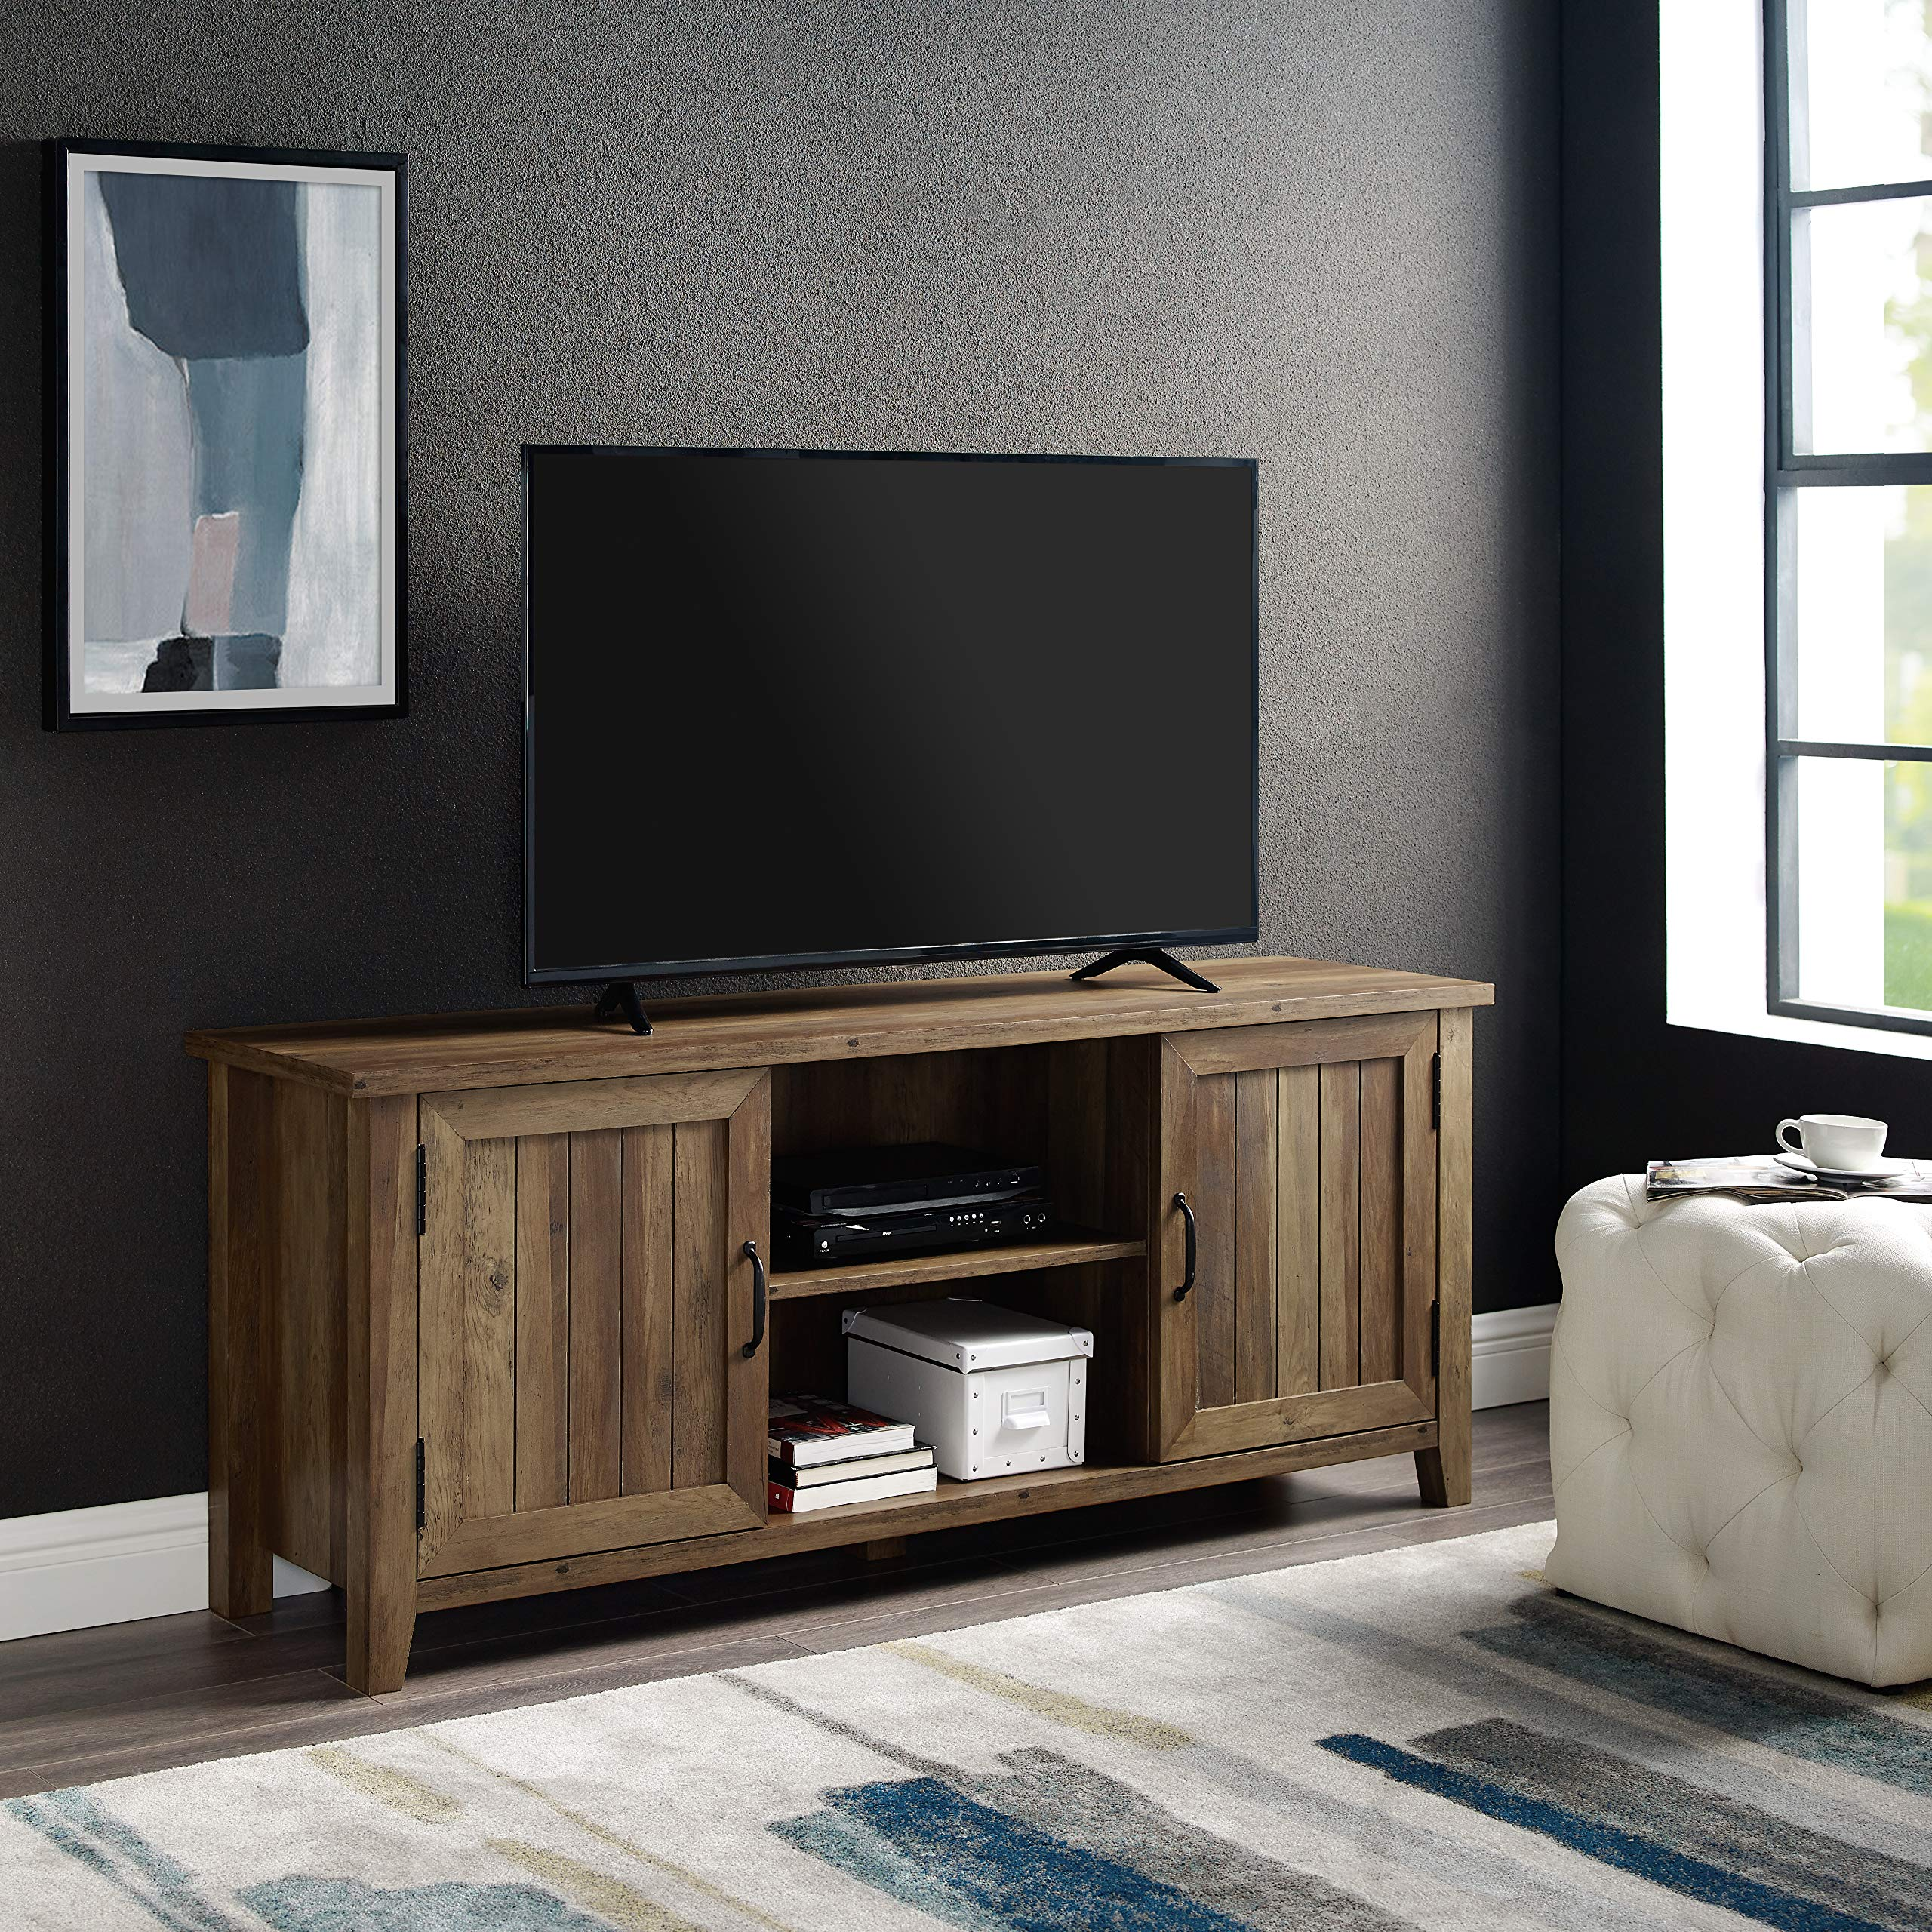 WE Furniture AZ58CS2DRO TV Stand, 58'', Rustic Oak by WE Furniture